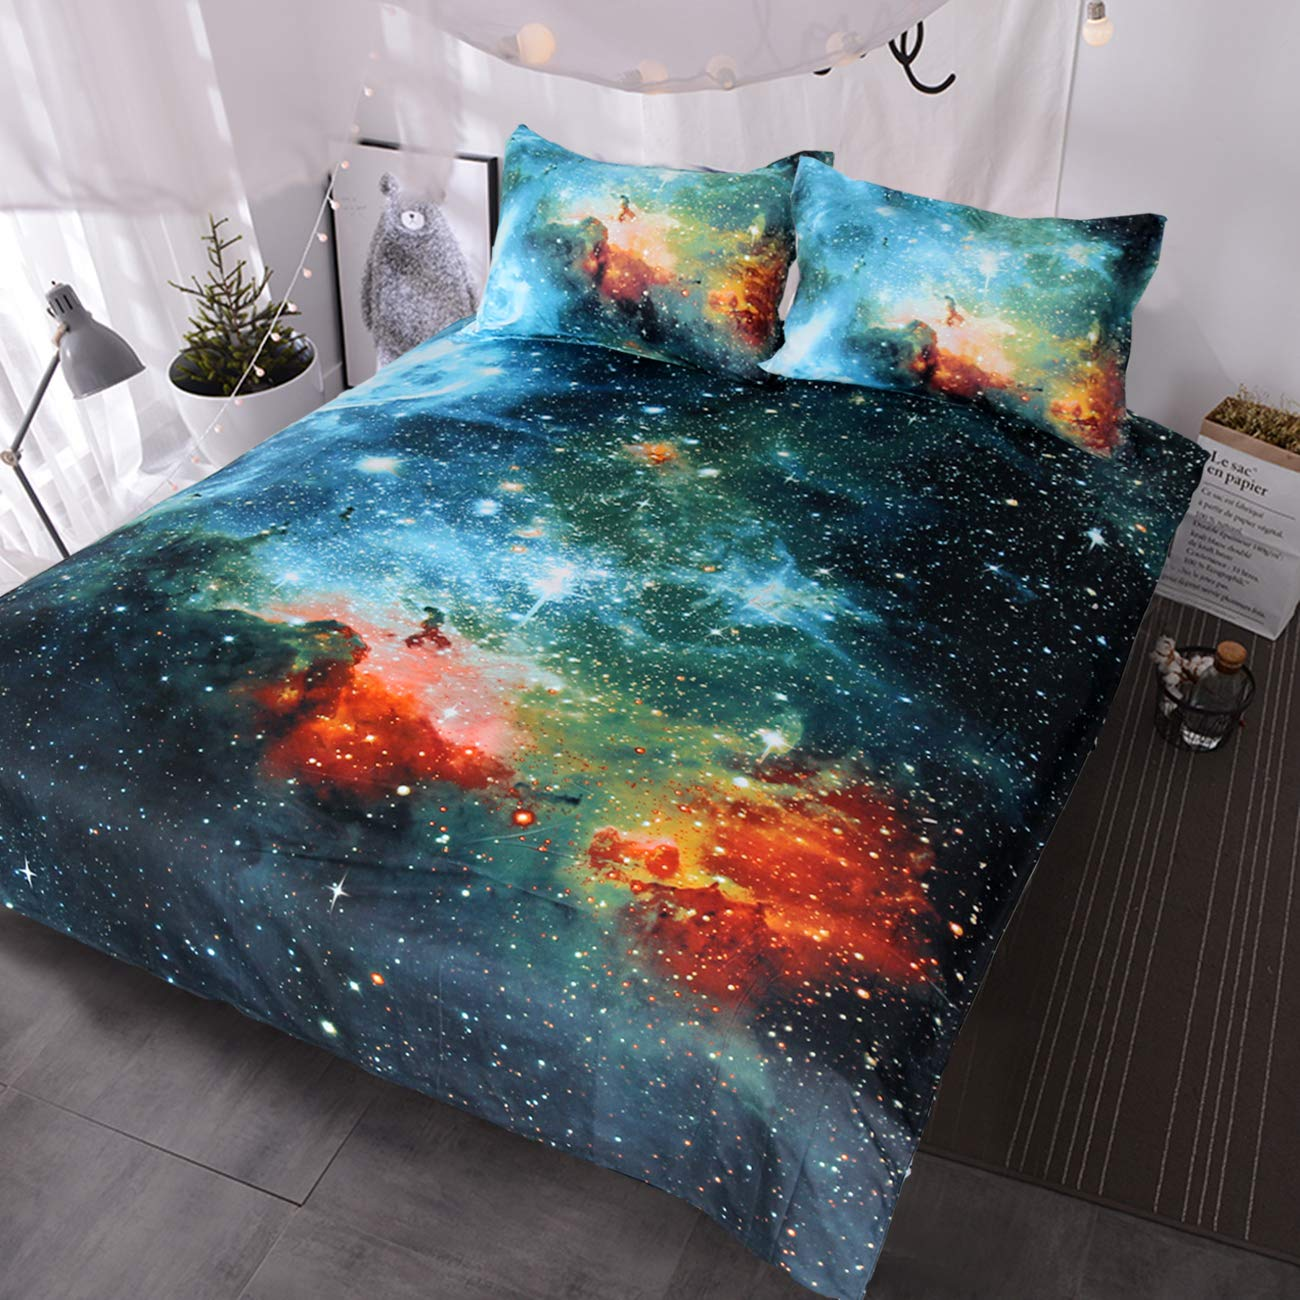 BlessLiving Galaxy Bedding Kids Boys Girls Outer Space Bedding Sets 3 Piece Red Blue Green Nebula Duvet Cover Universe Bed Set (Twin)